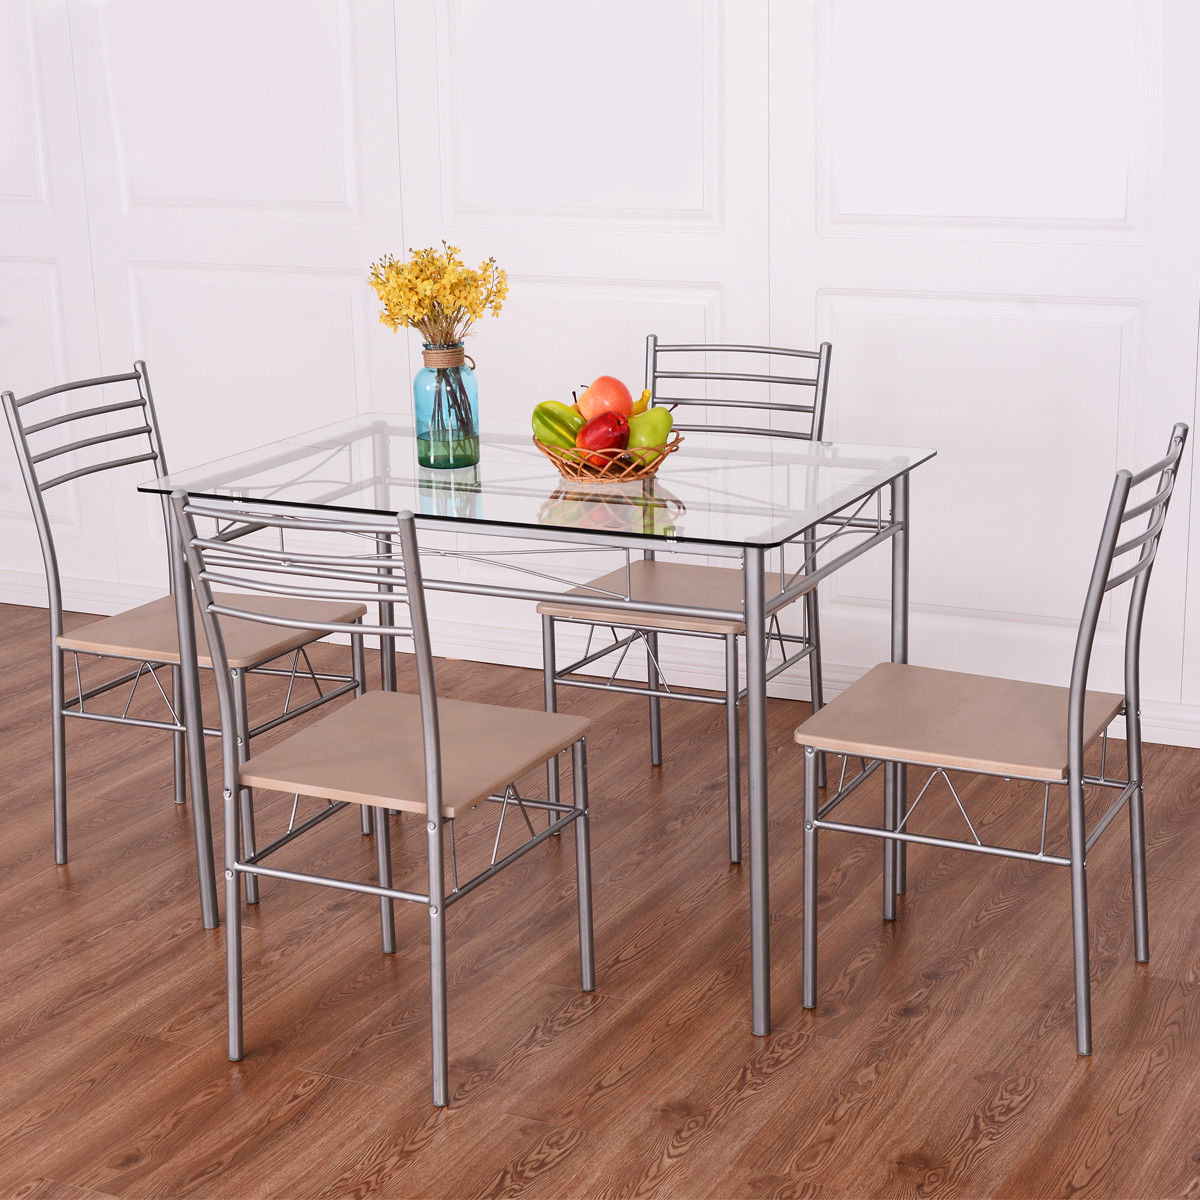 walmart kitchen furniture costway 5 piece dining set table and 4 chairs glass top kitchen breakfast furniture walmart 3160